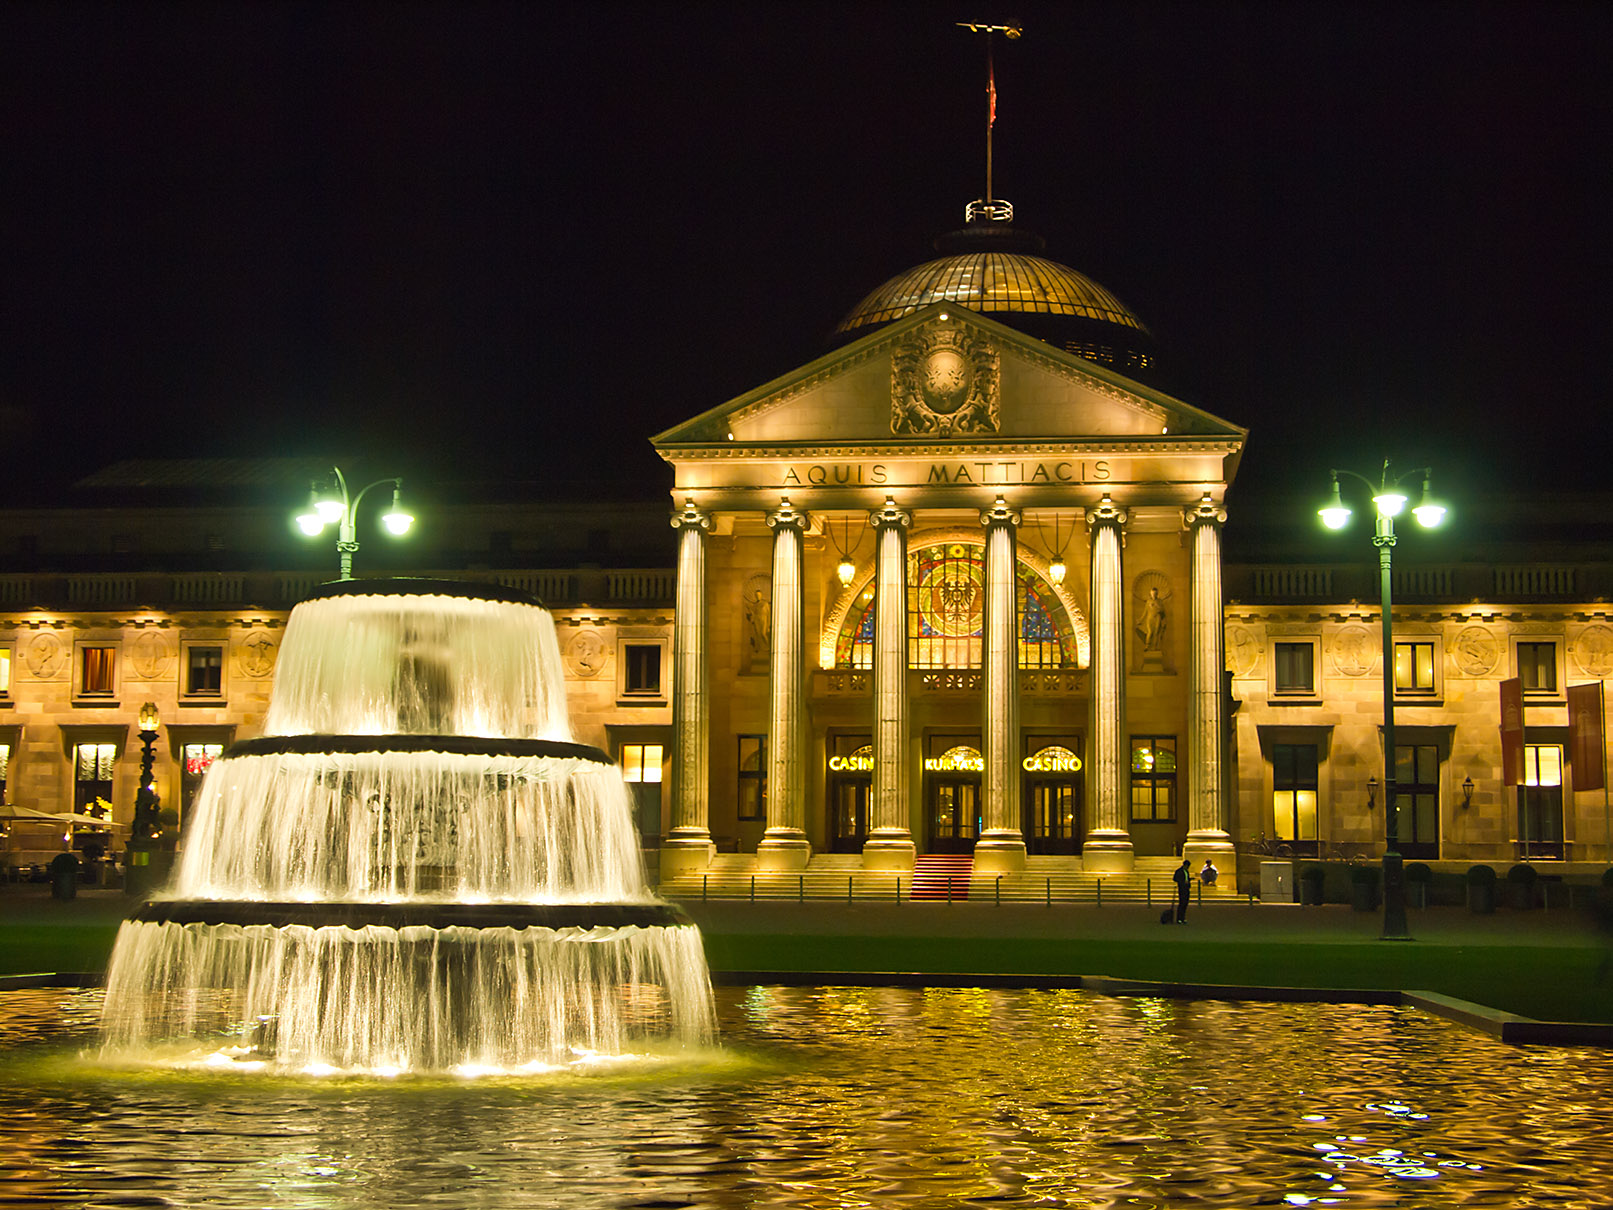 Kurhaus Wiesbaden (spa house) with one Fountain of the Bowling Green in the evening, German